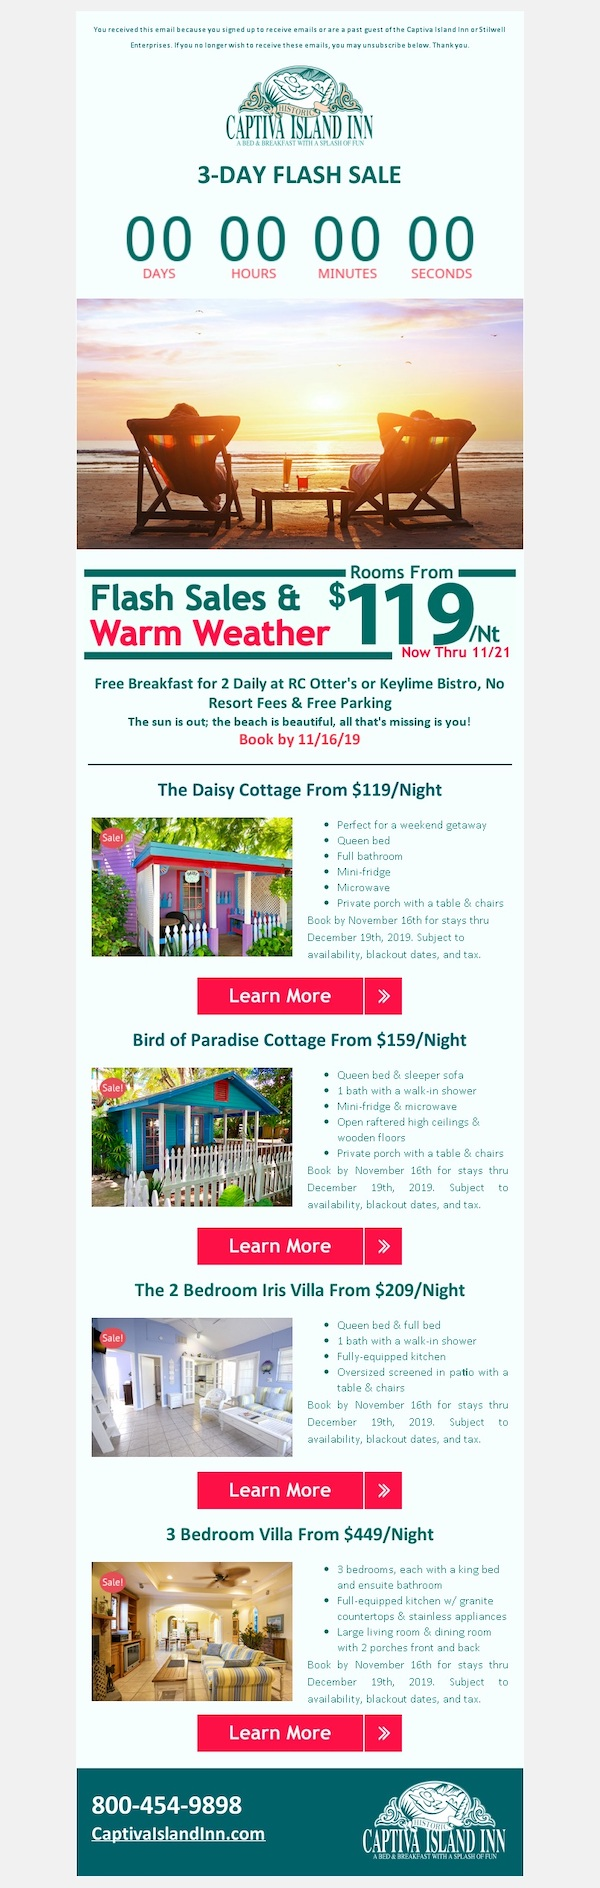 Captiva Island Inn - Past Guest Email 2019-11-13